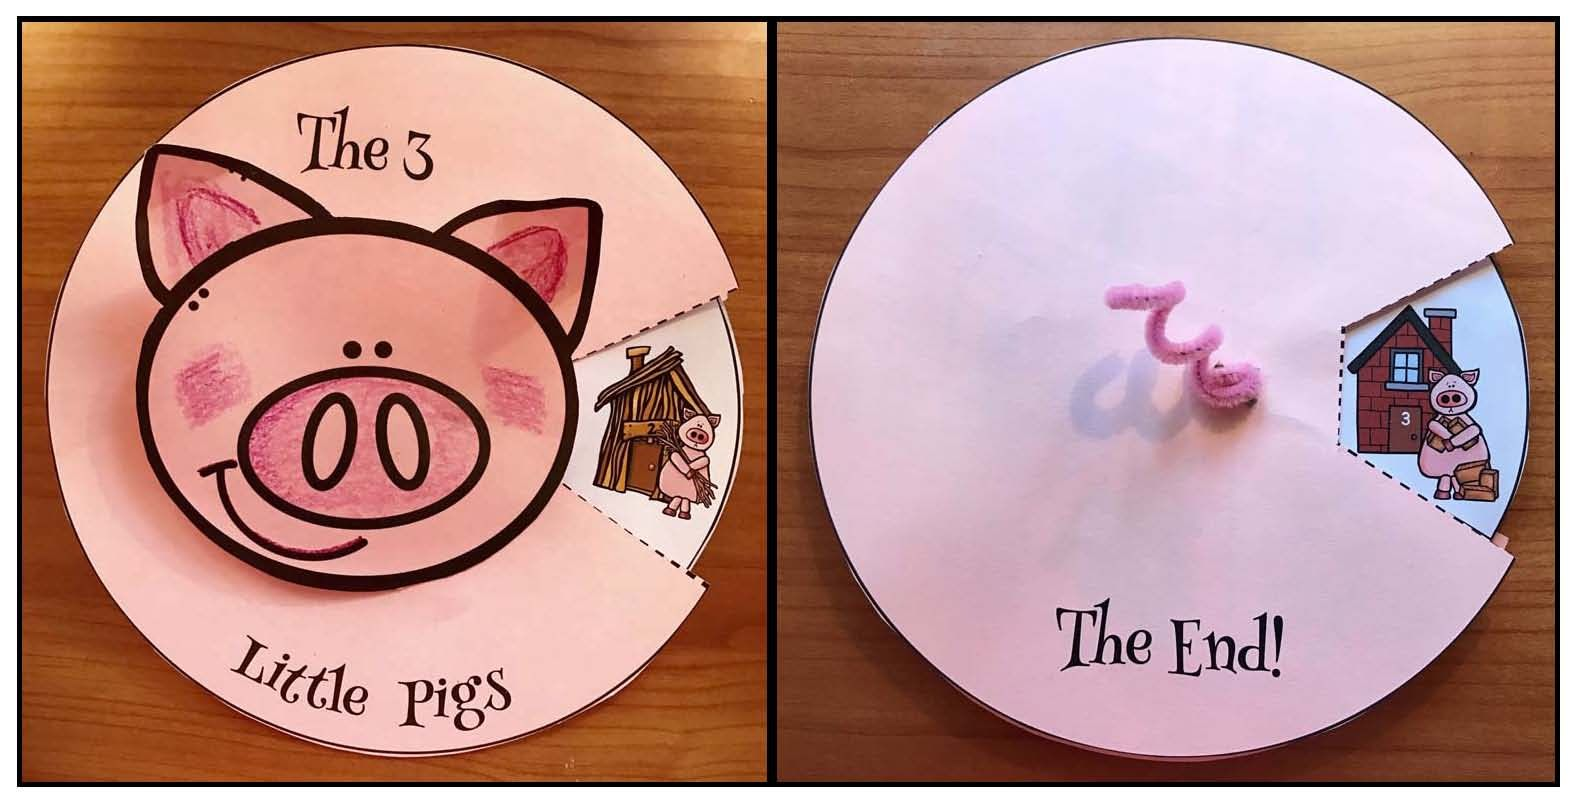 Activities Crafts For The 3 Little Pigs Fairy Tale Little Pigs Pig Crafts Fairy Tale Crafts [ 802 x 1574 Pixel ]